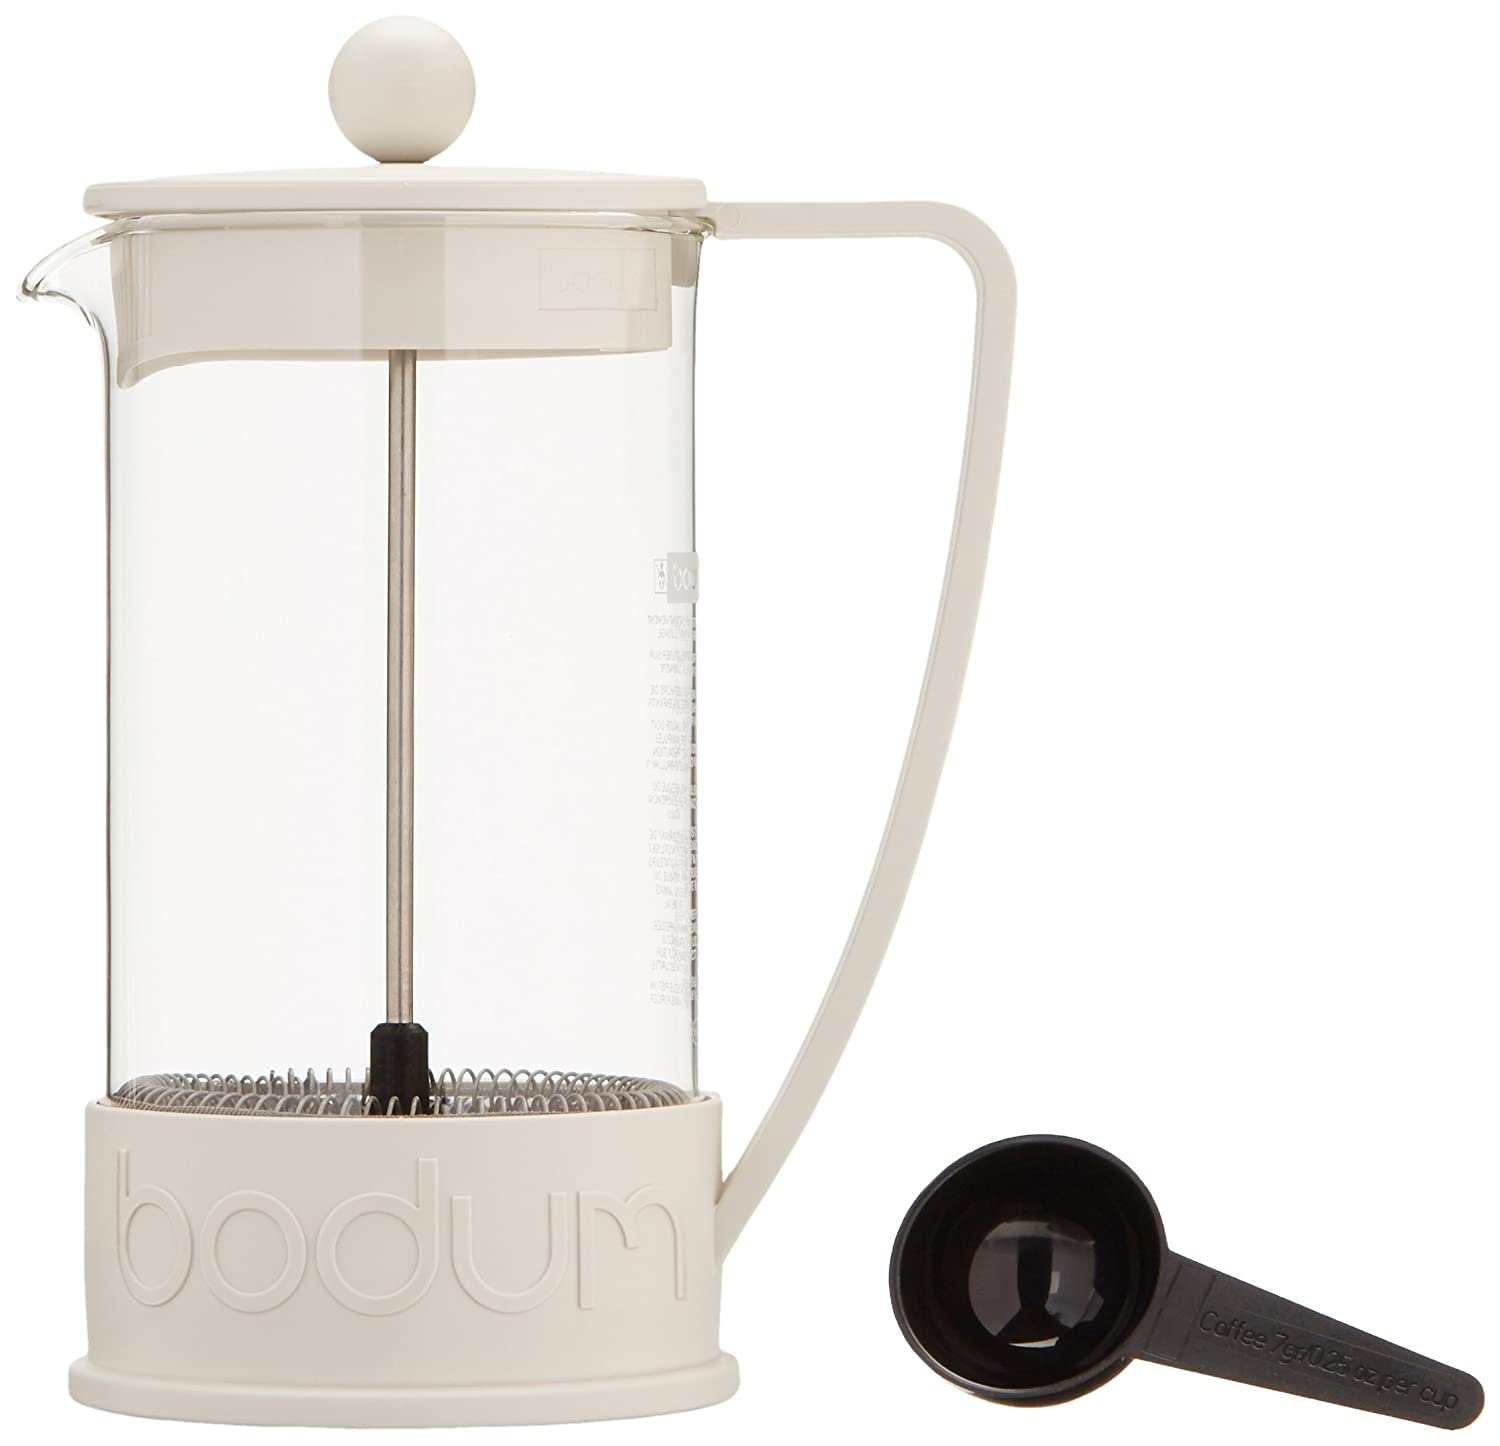 Bed bath beyond french press - Amazon Com Bodum Brazil French Press 1 Liter 8 Cup Coffee Maker 34 Ounce Black Kitchen Dining